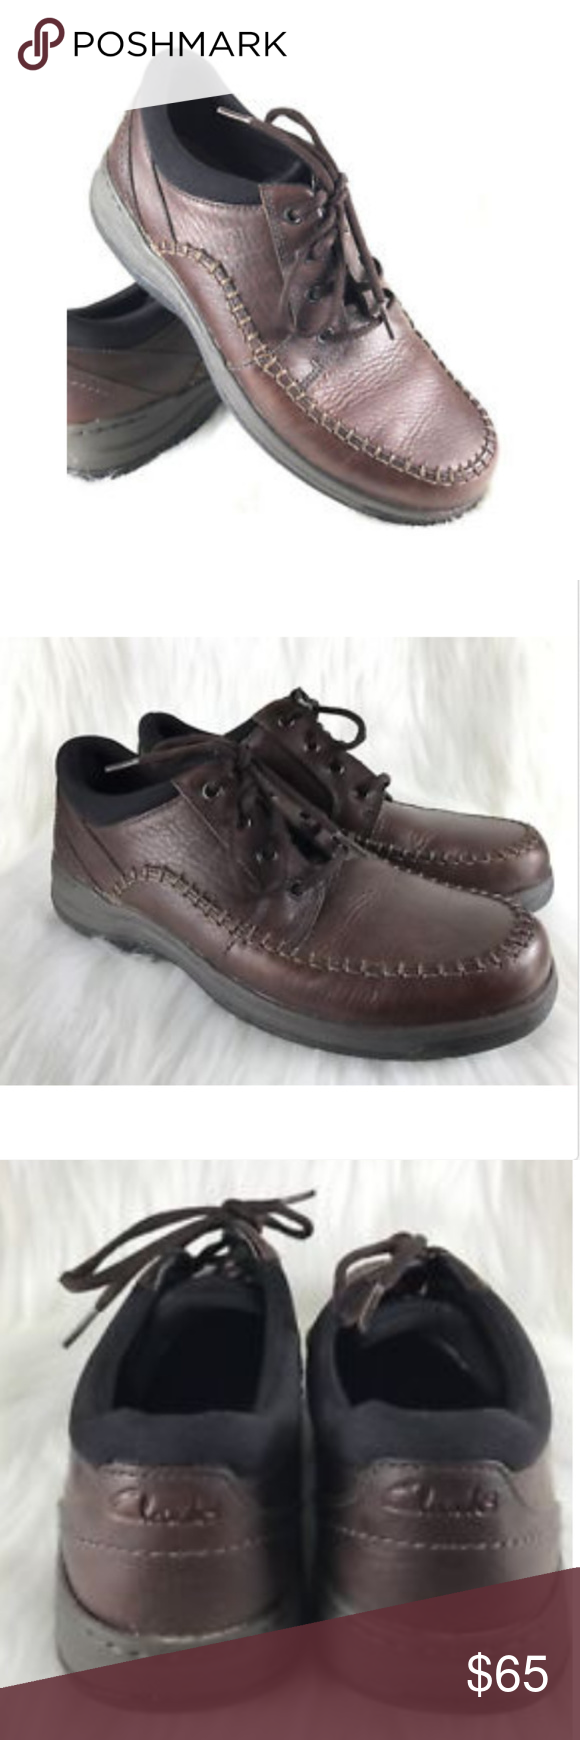 69a3914120a9 Clarks Portland 2 Tie Casual Shoe Brown Leather 8 New w o Tags Clarks  Unstructured Portland 2 Tie Casual Oxford Brown Leather Size 8